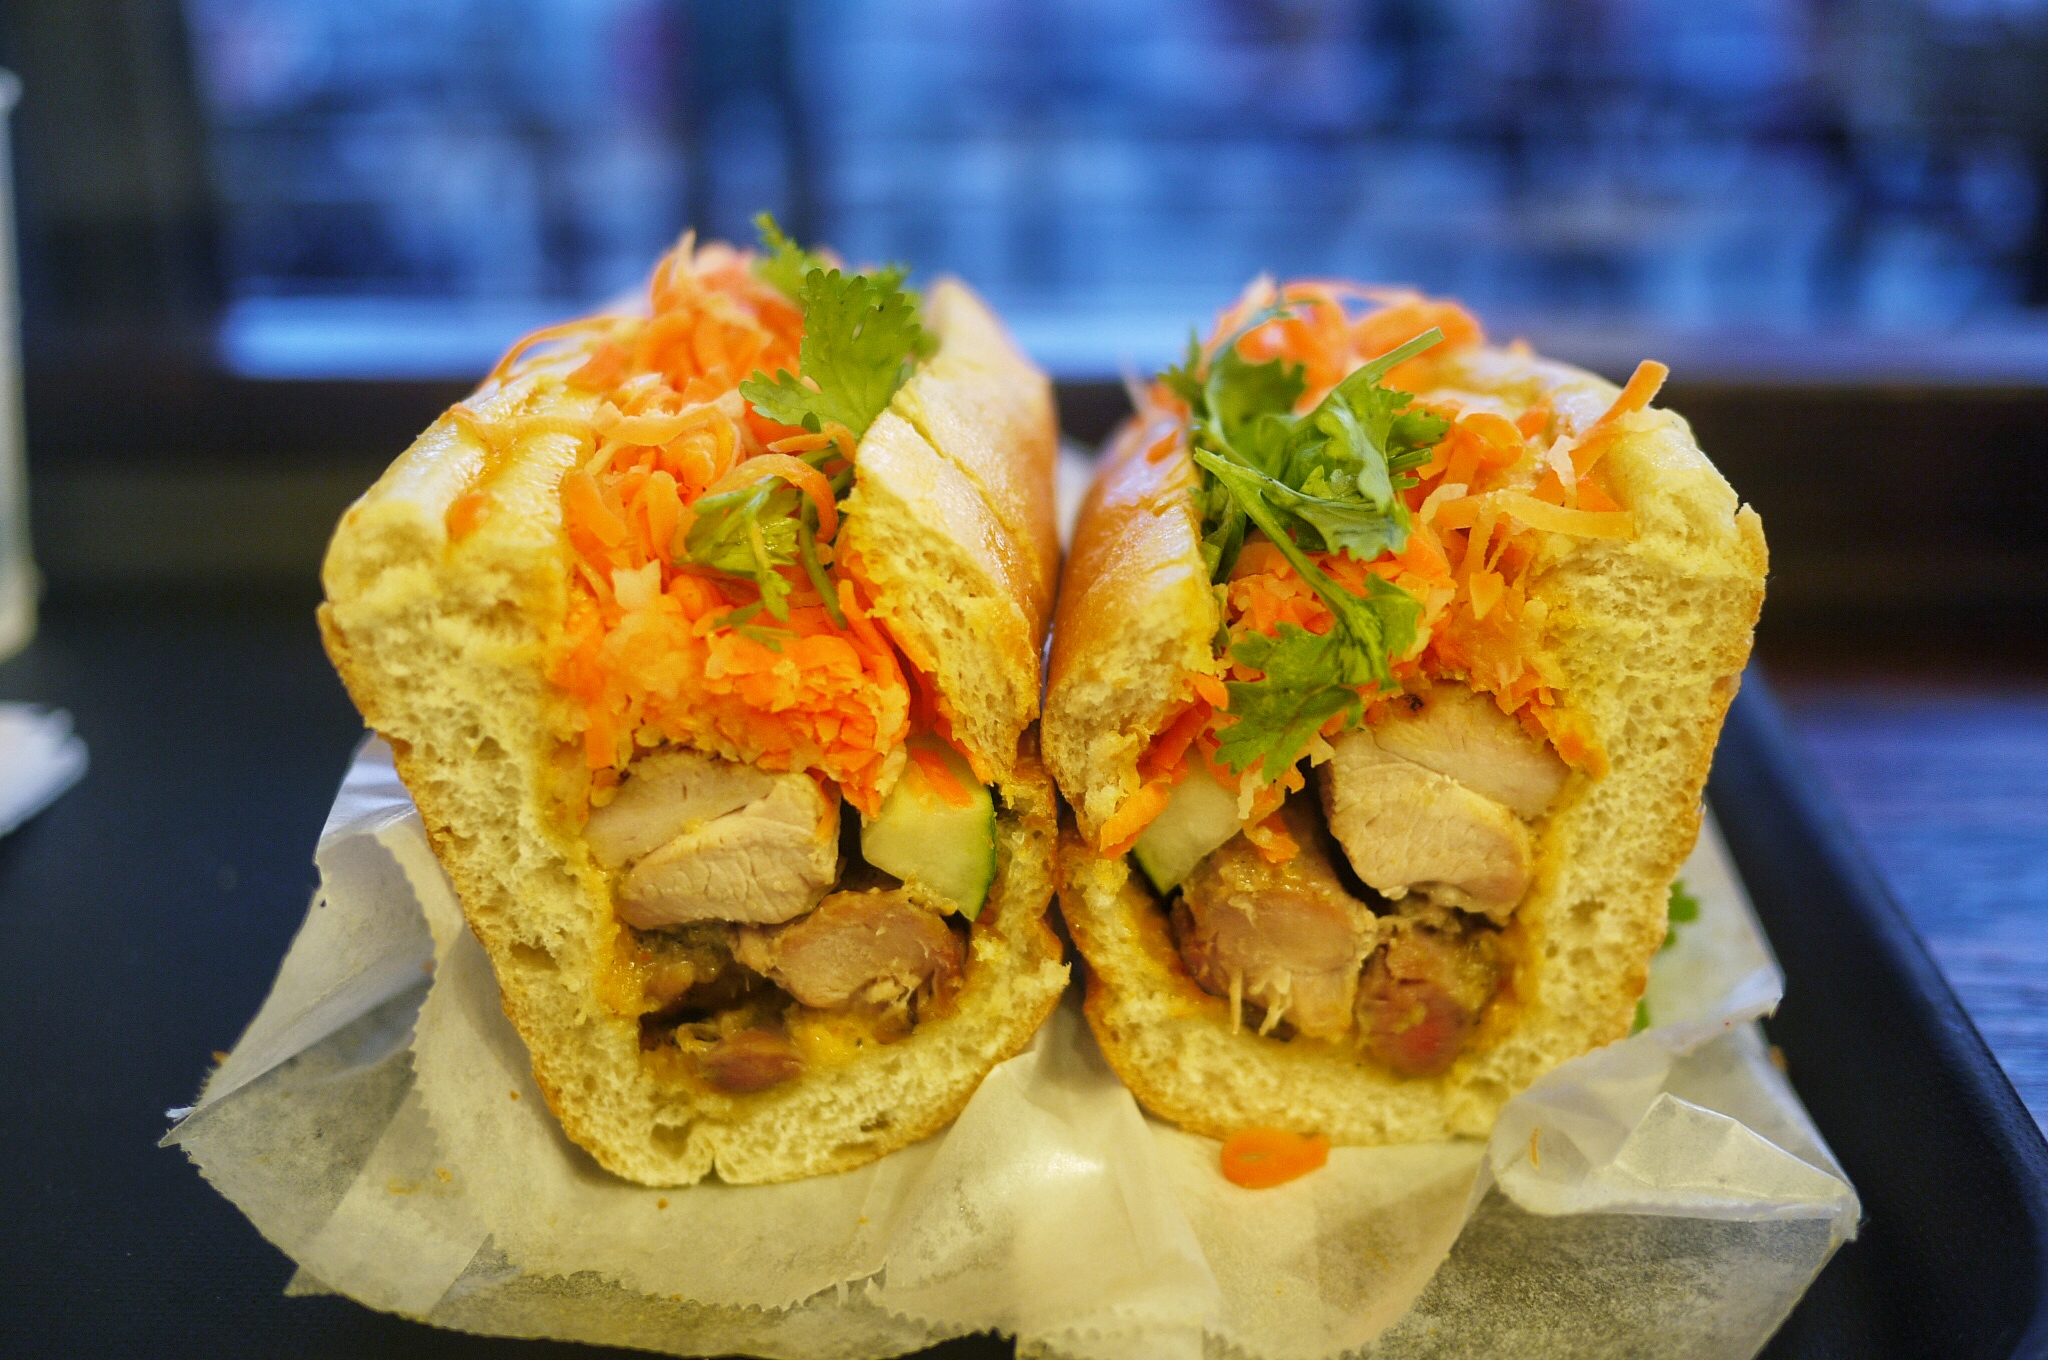 Lemongrass Chicken Banh Mi $4.99 . The lemongrass marinated chicken thigh was generous and so tasty! The banh mi bun is also at its perfect texture, crunchy outside yet soft inside. It's everything I wished for, although I do hope they give more cilantro to it.